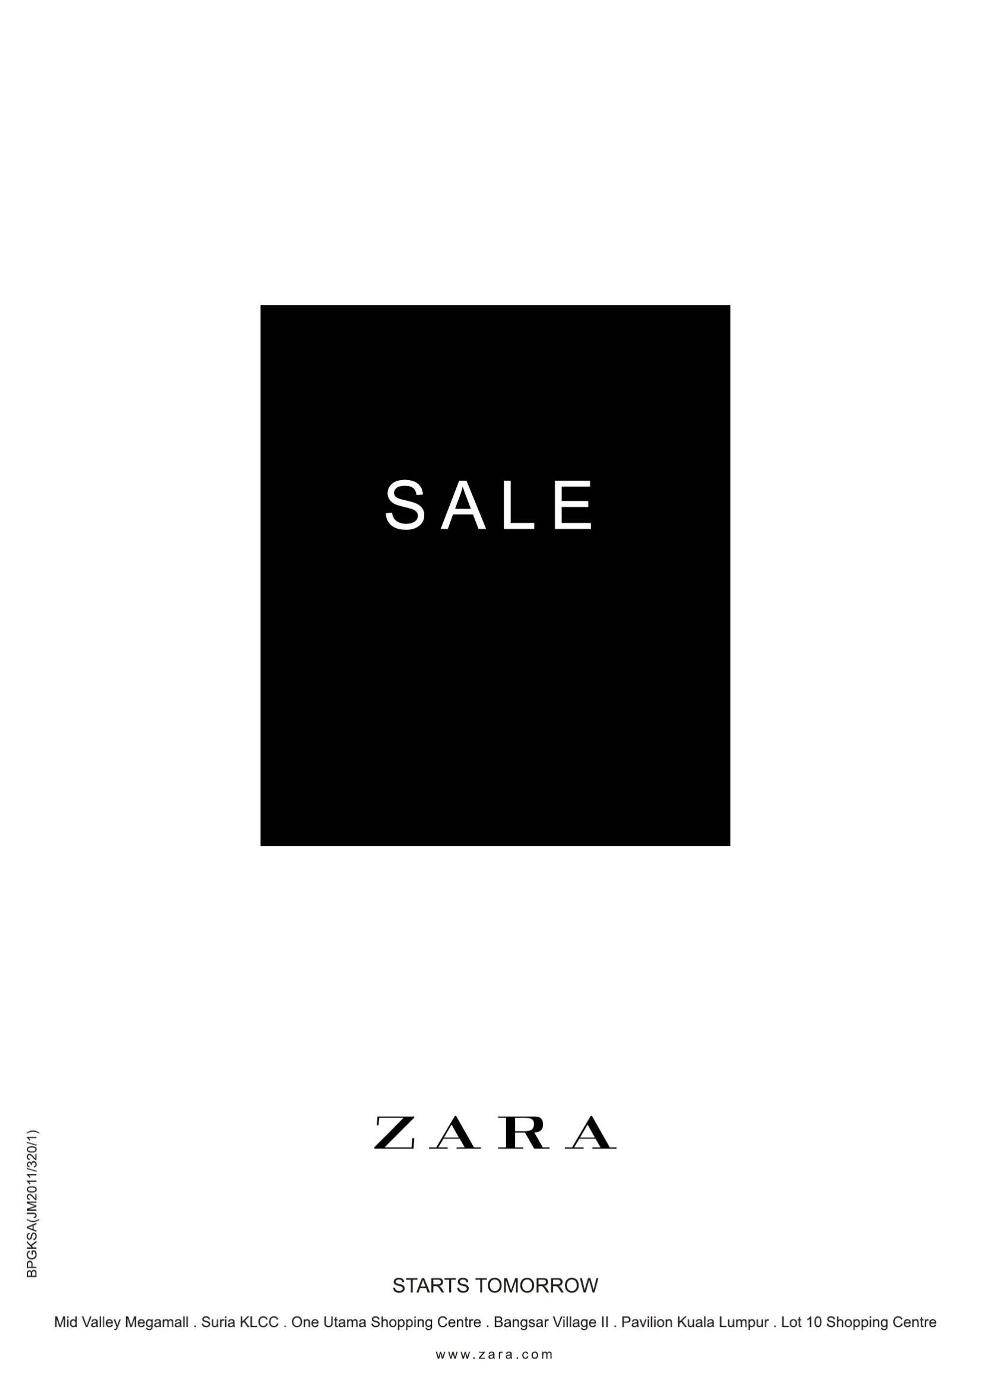 ... zara application online job employment form available positions at